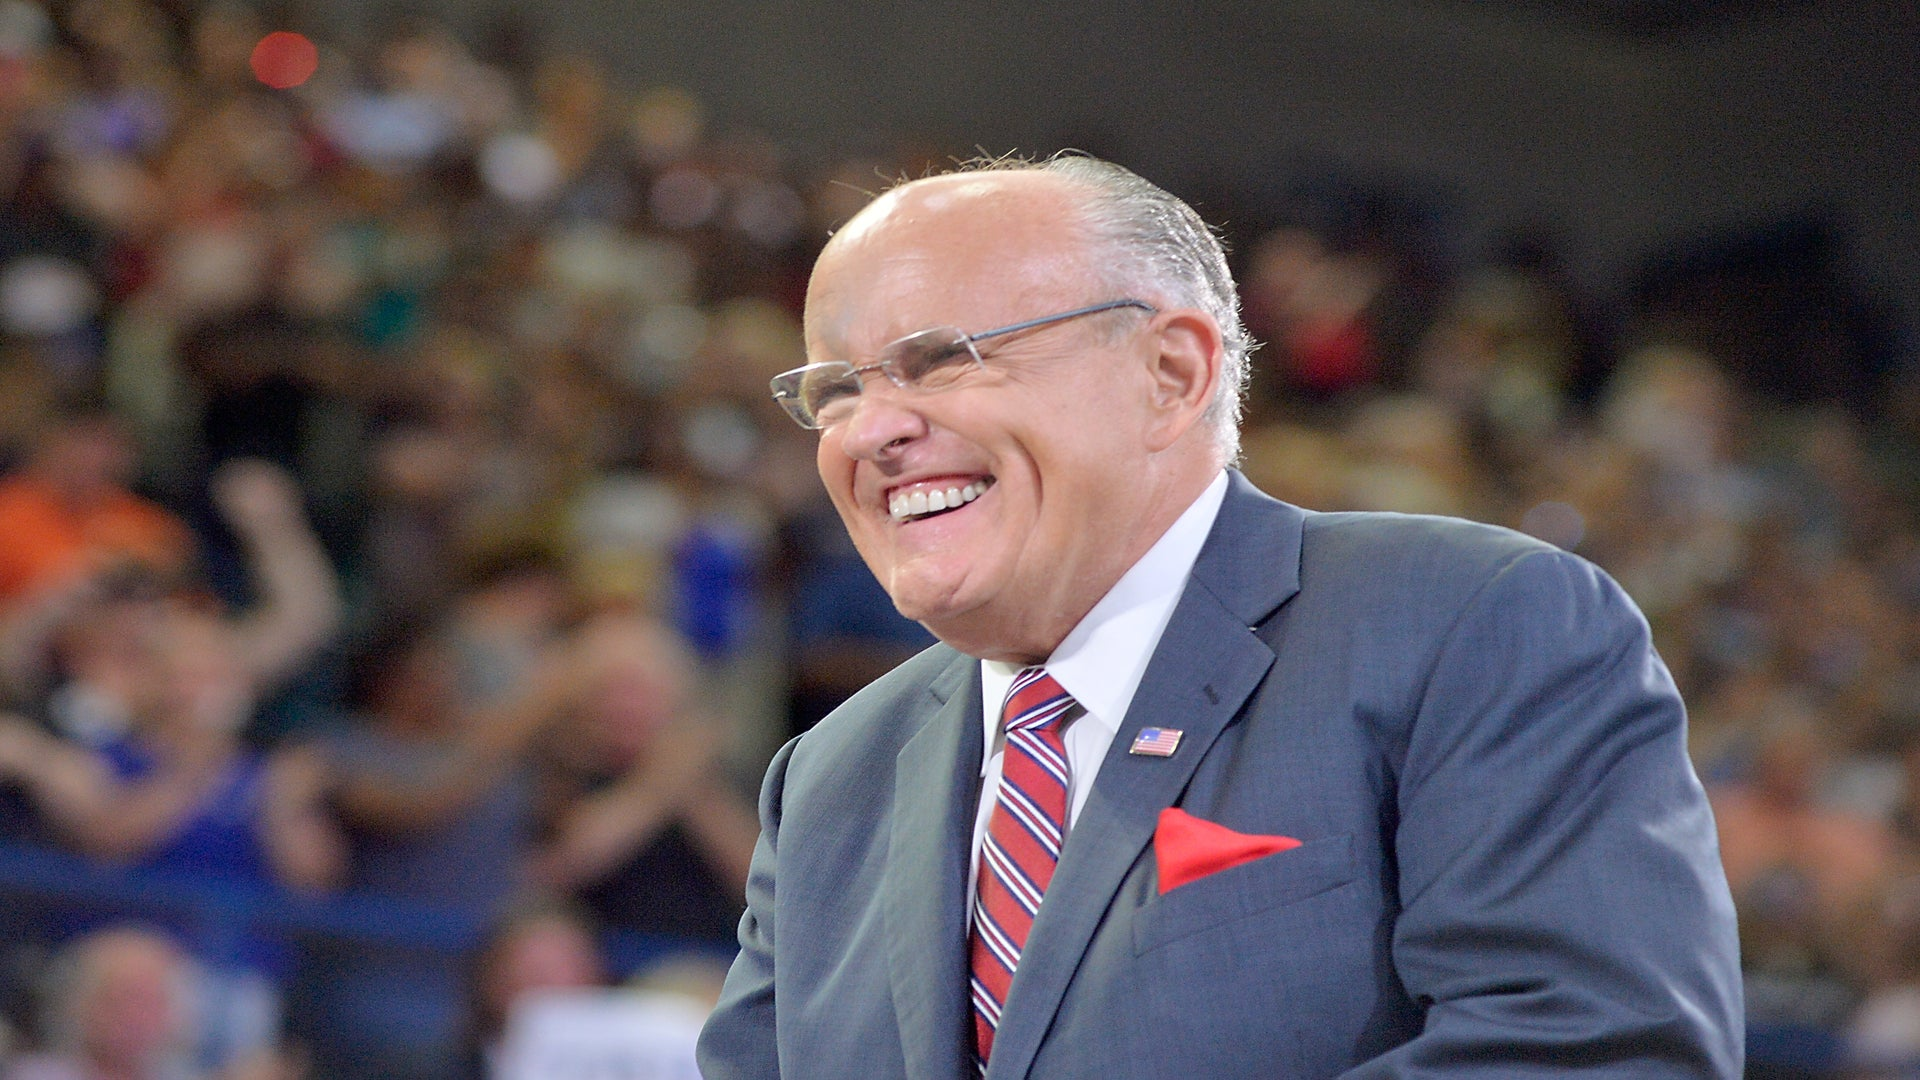 Rudy Giuliani Emerges as Favorite for Trump's Secretary of State